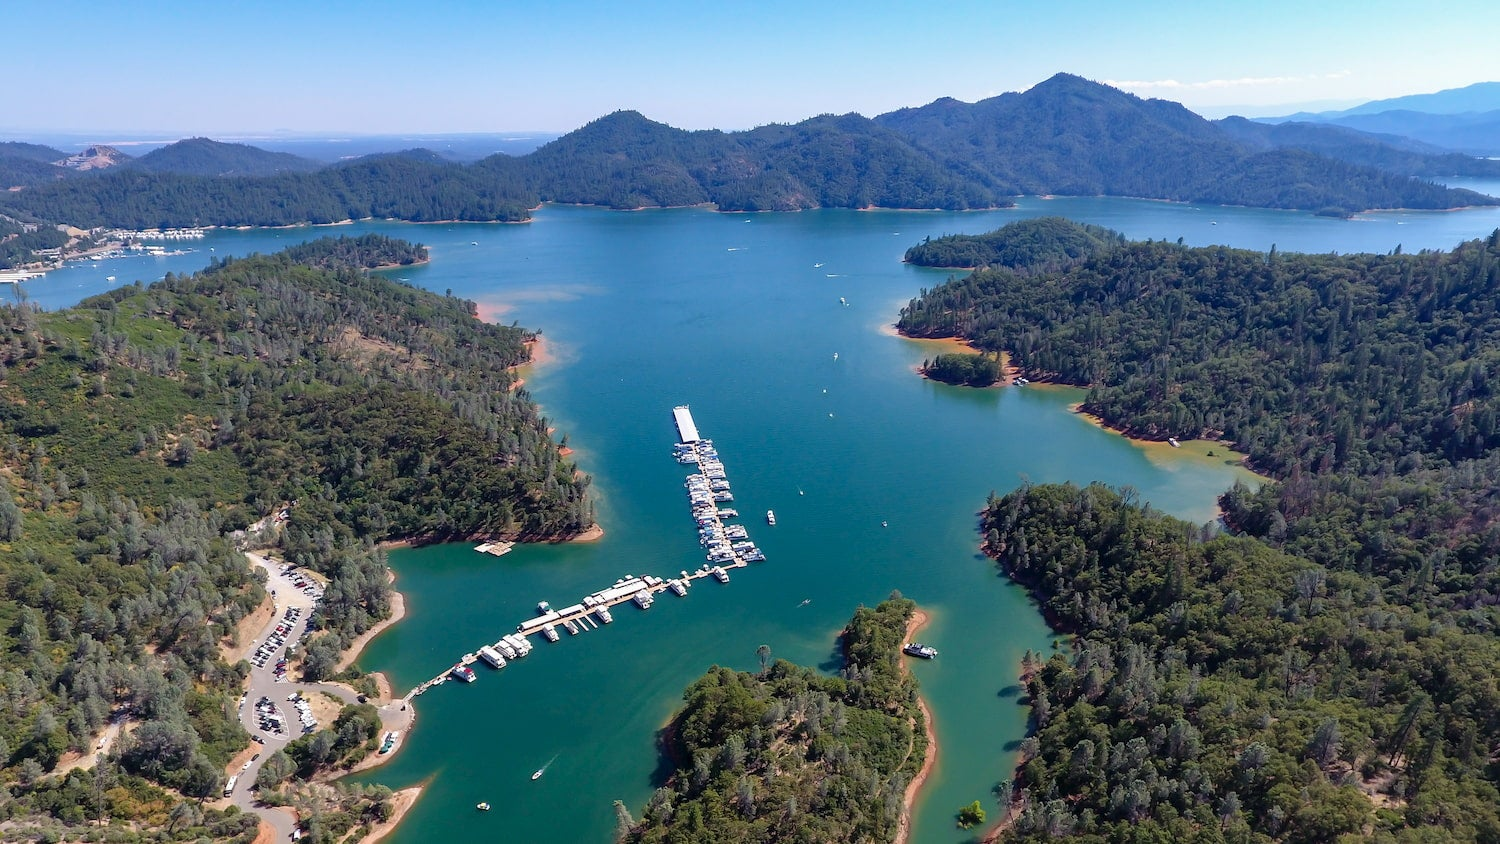 overview shot of shasta laka and marina